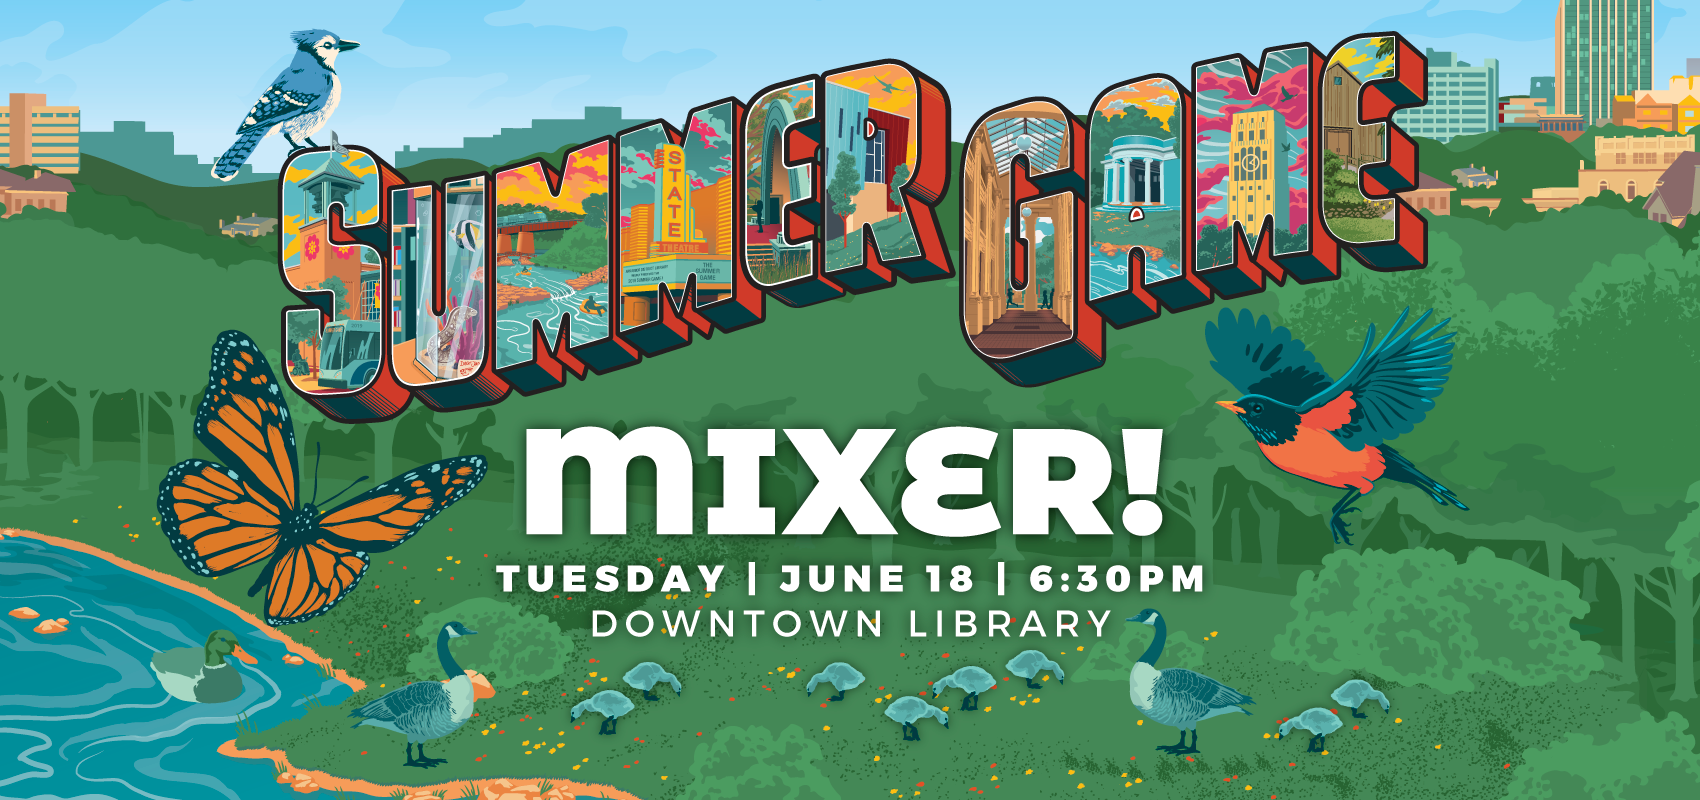 Summer Game Mixer - Tuesday June 18. .